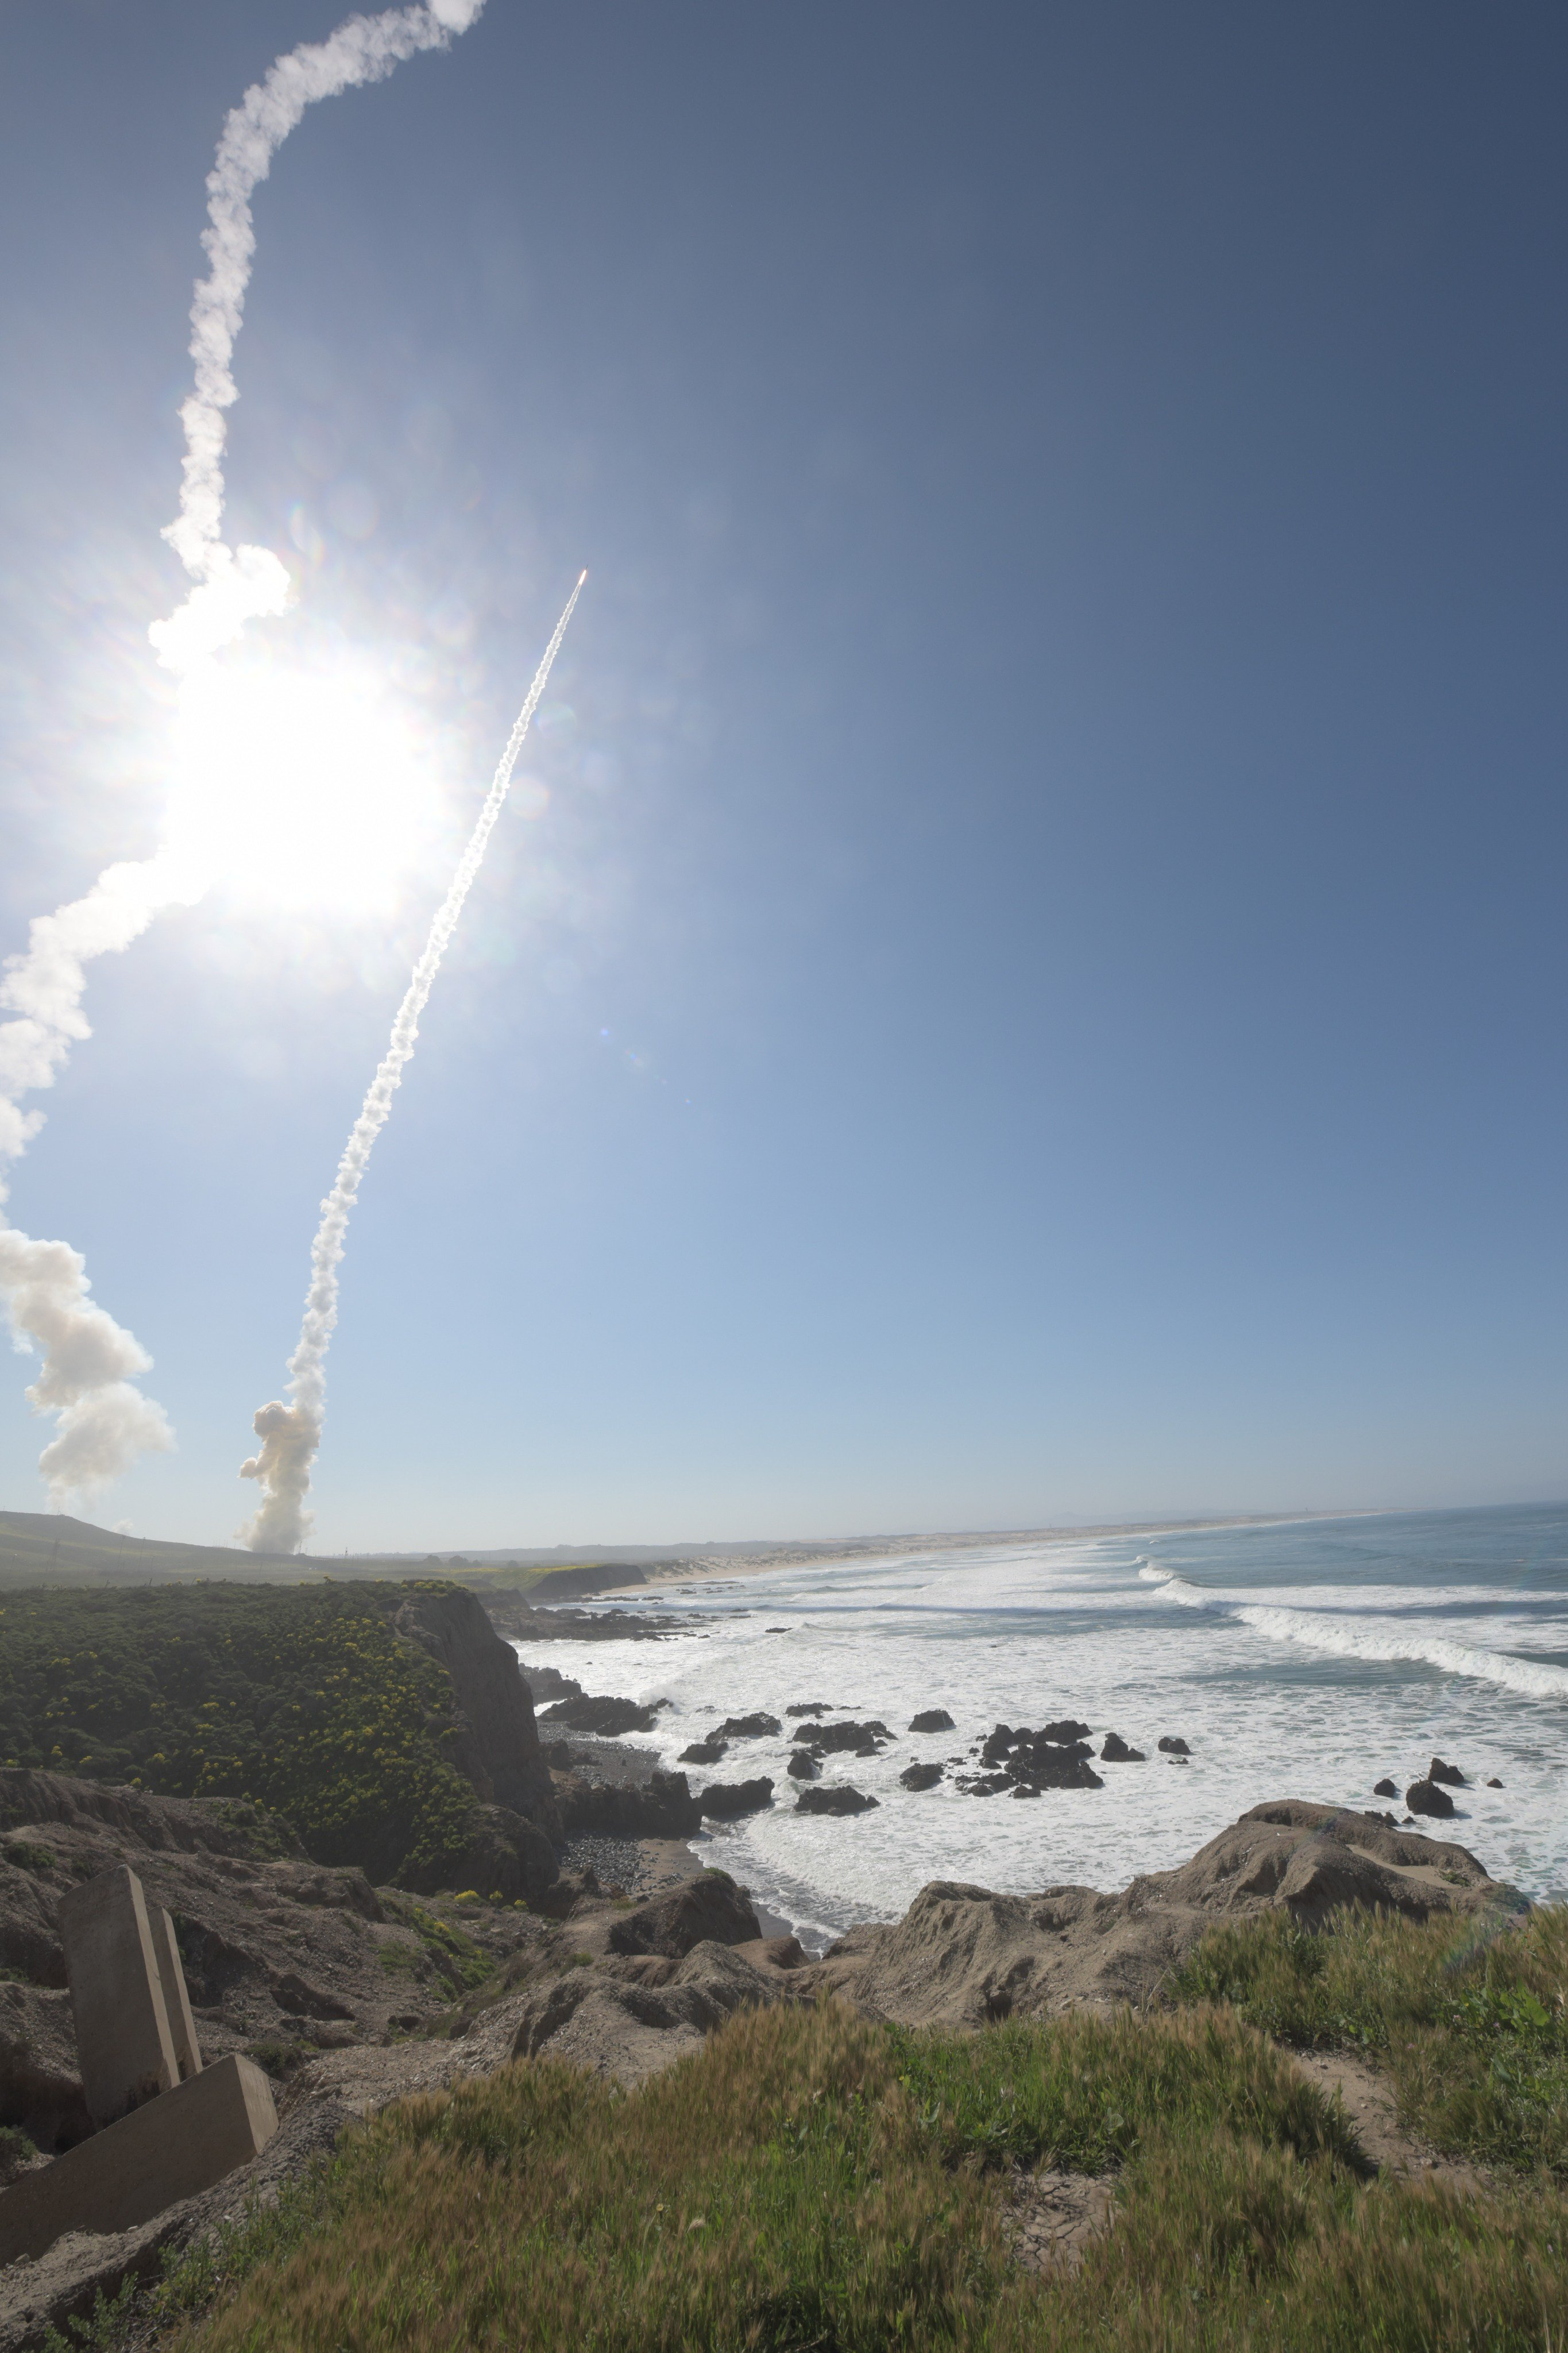 Two long-range Ground-based Interceptors launched from Vandenberg Air Force Base, Calif., March 25, 2019, in the first-ever salvo engagement test of a threat-representative ICBM target. The two GBIs successfully intercepted a target launched from the Ronald Reagan Ballistic Missile Defense Test Site on Kwajalein Atoll.